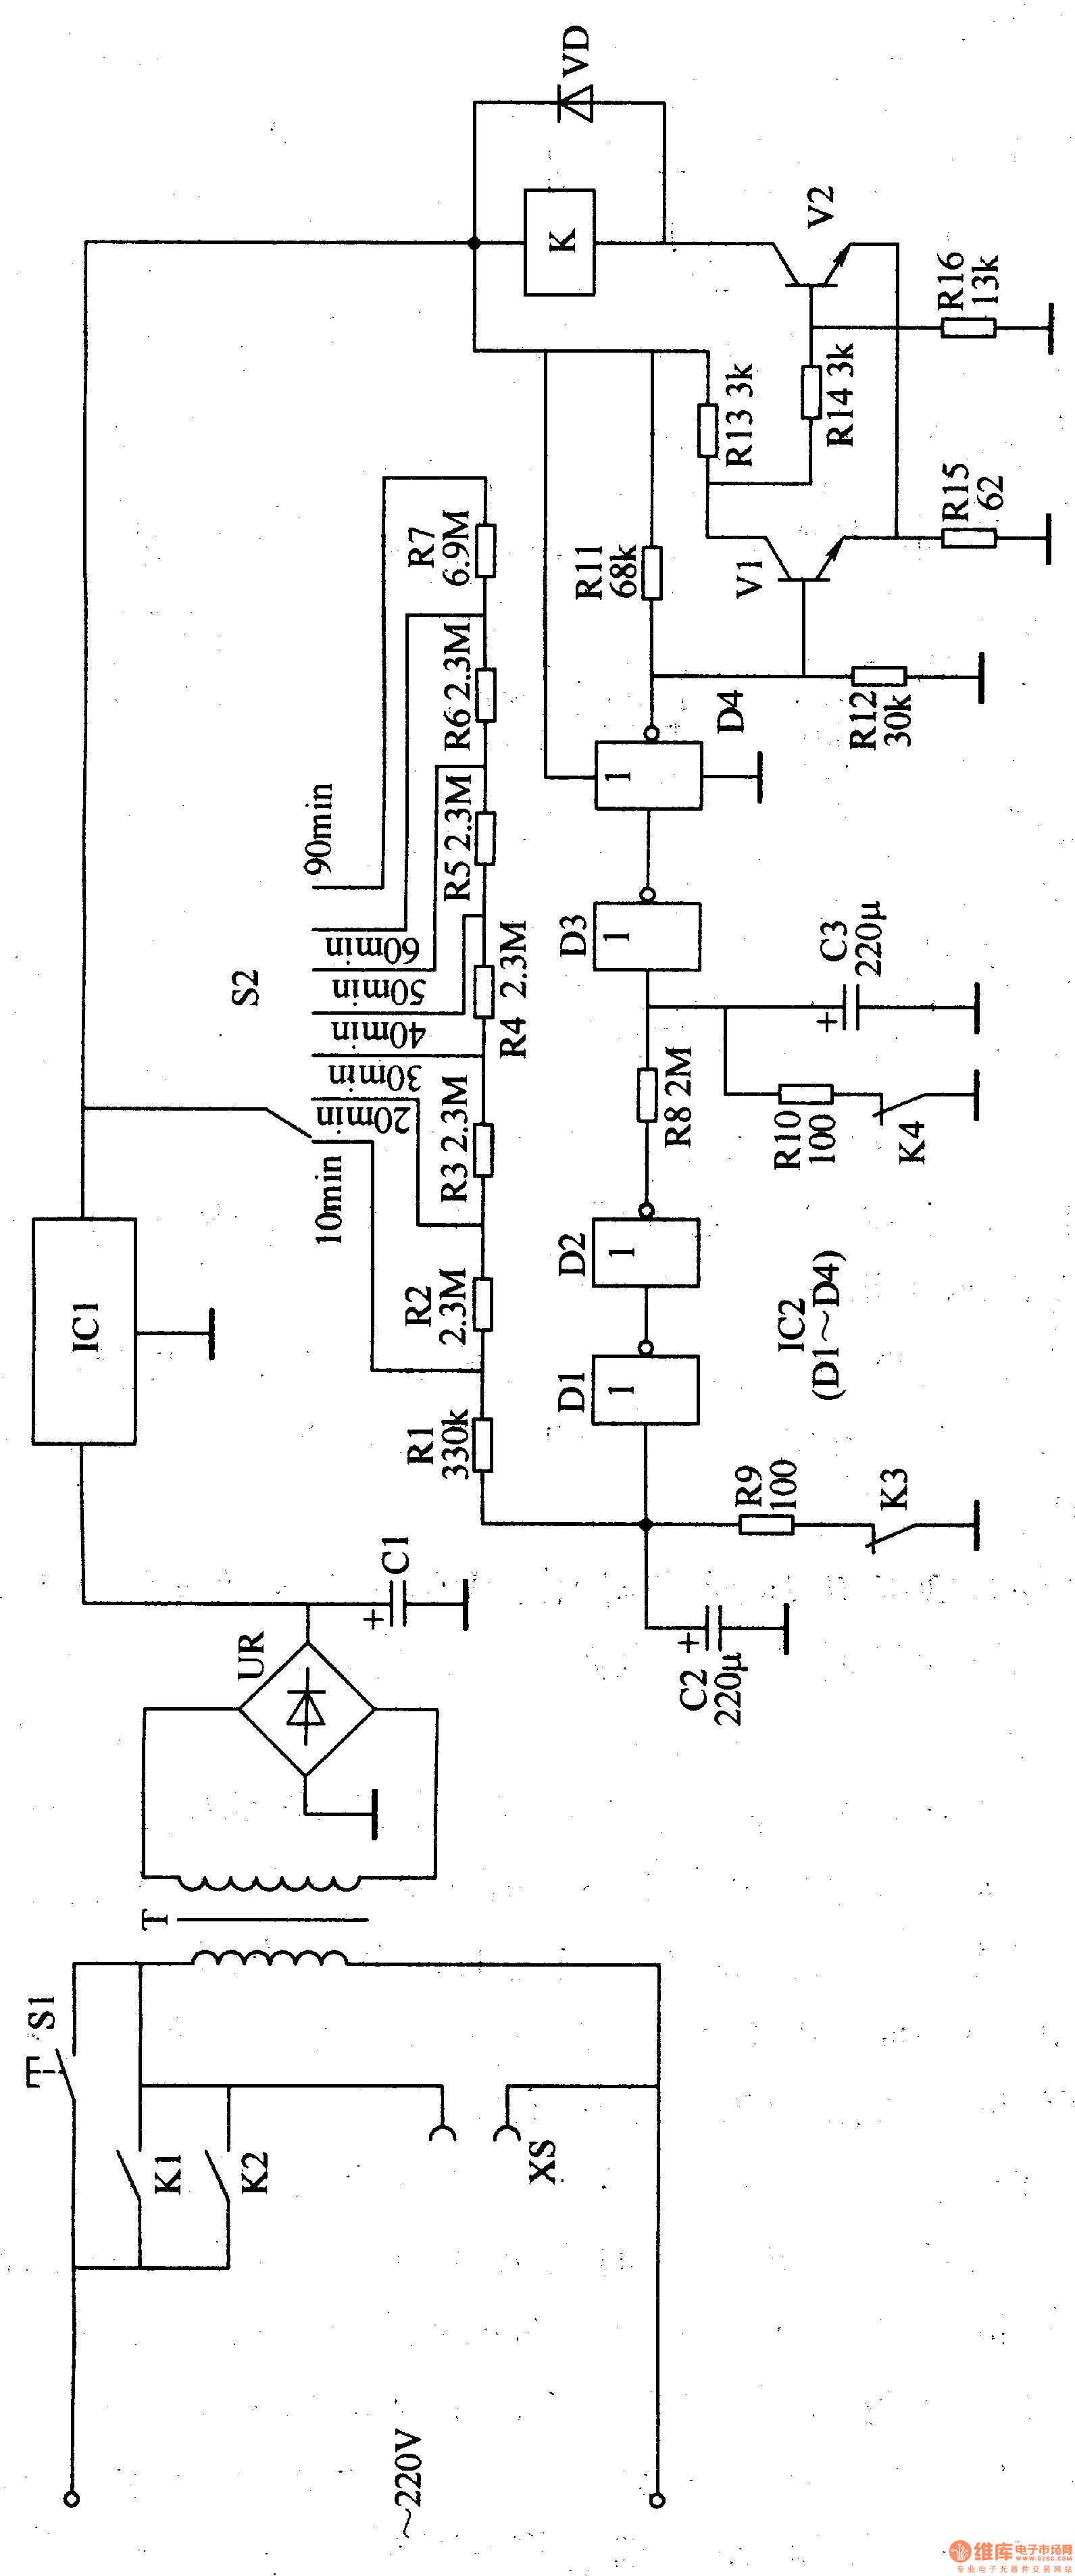 primary timing controller 4 - time control - control circuit - circuit diagram